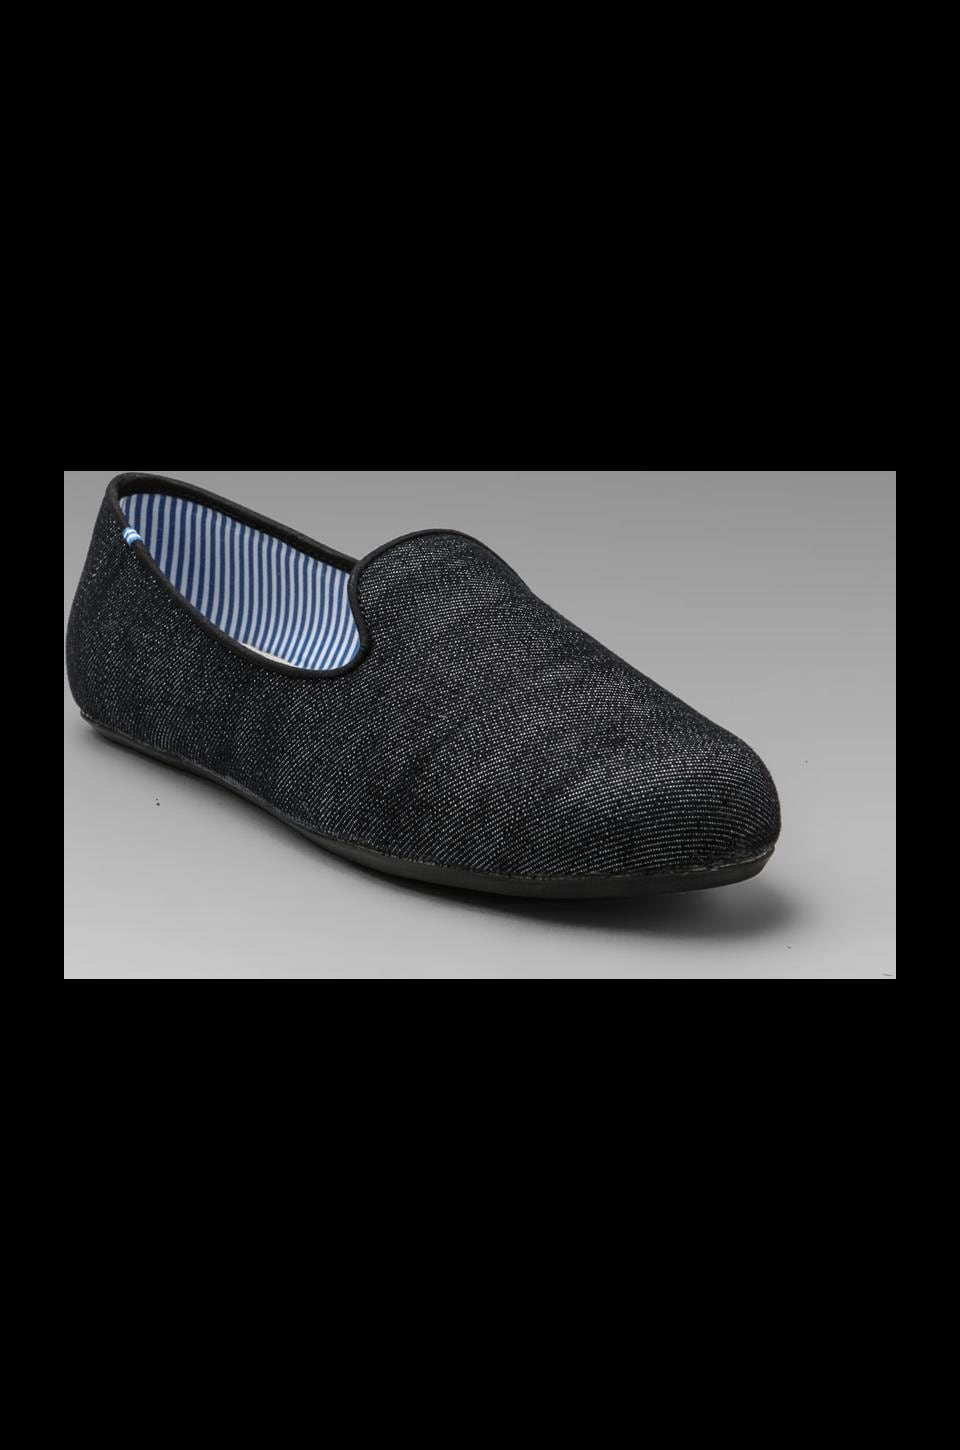 Charles Philip Shanghai Constantino Loafer in Denim